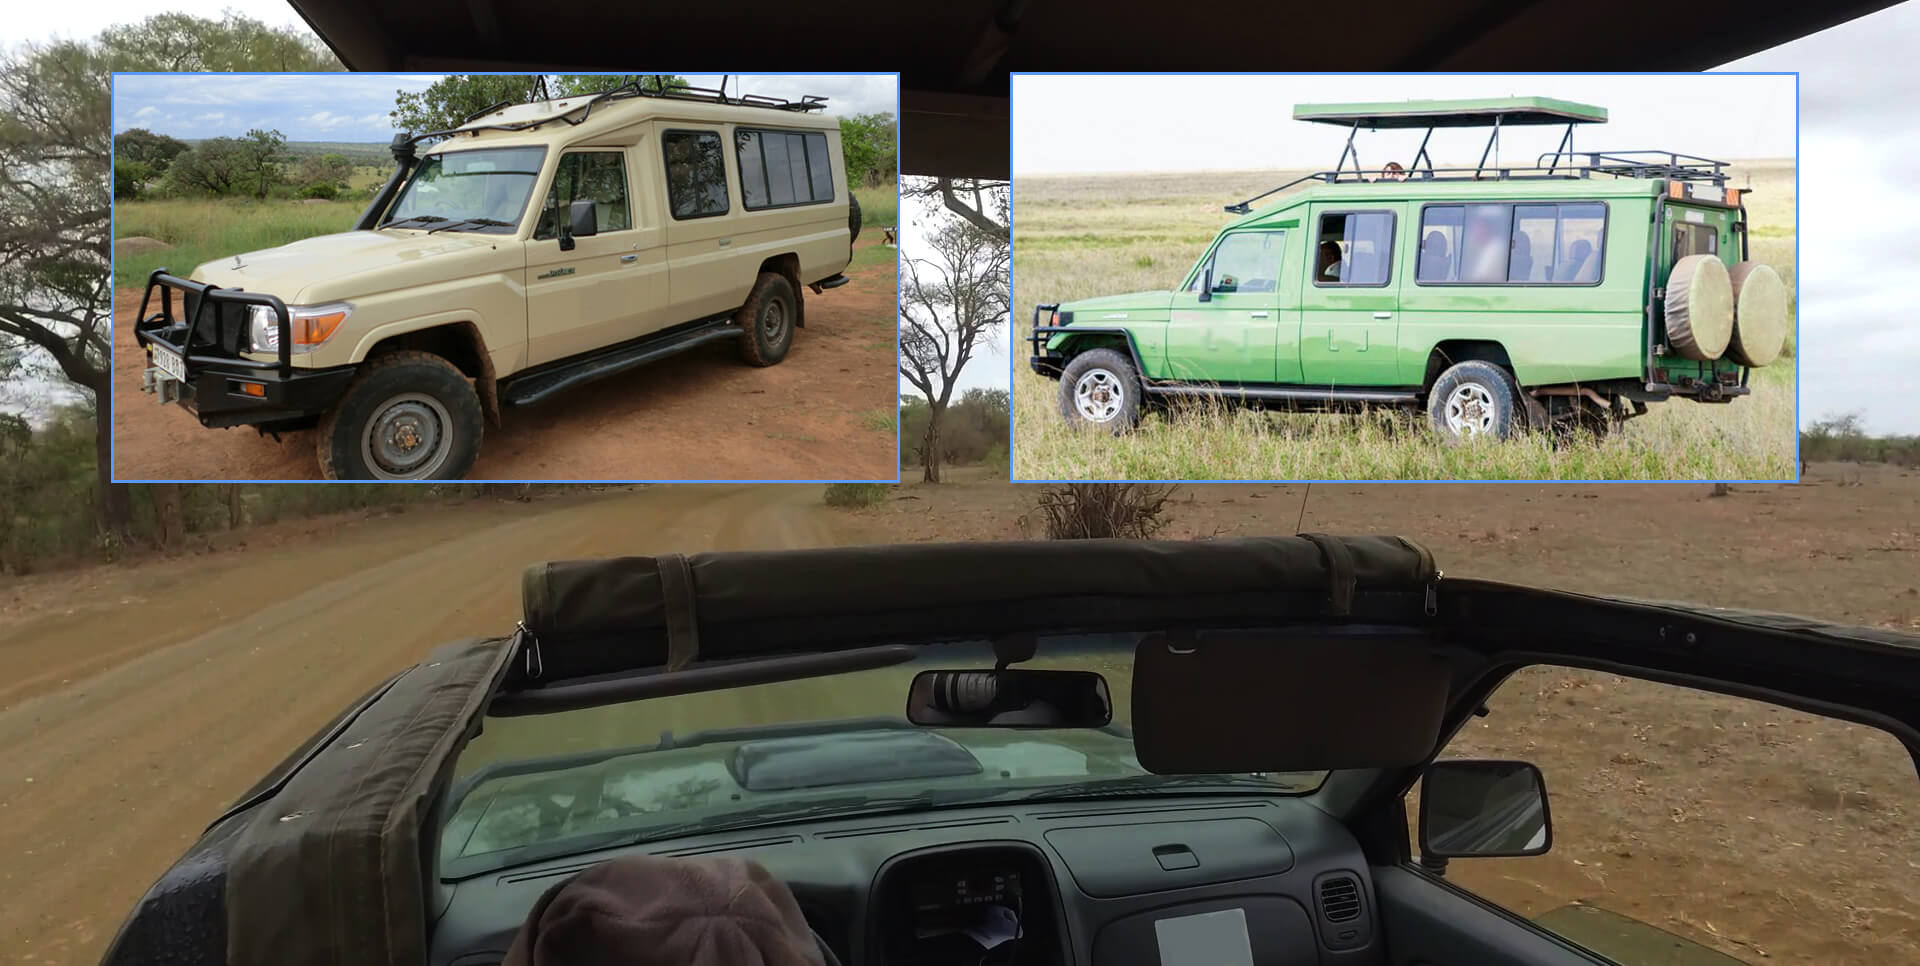 Safari car rental, 4x4 car rental